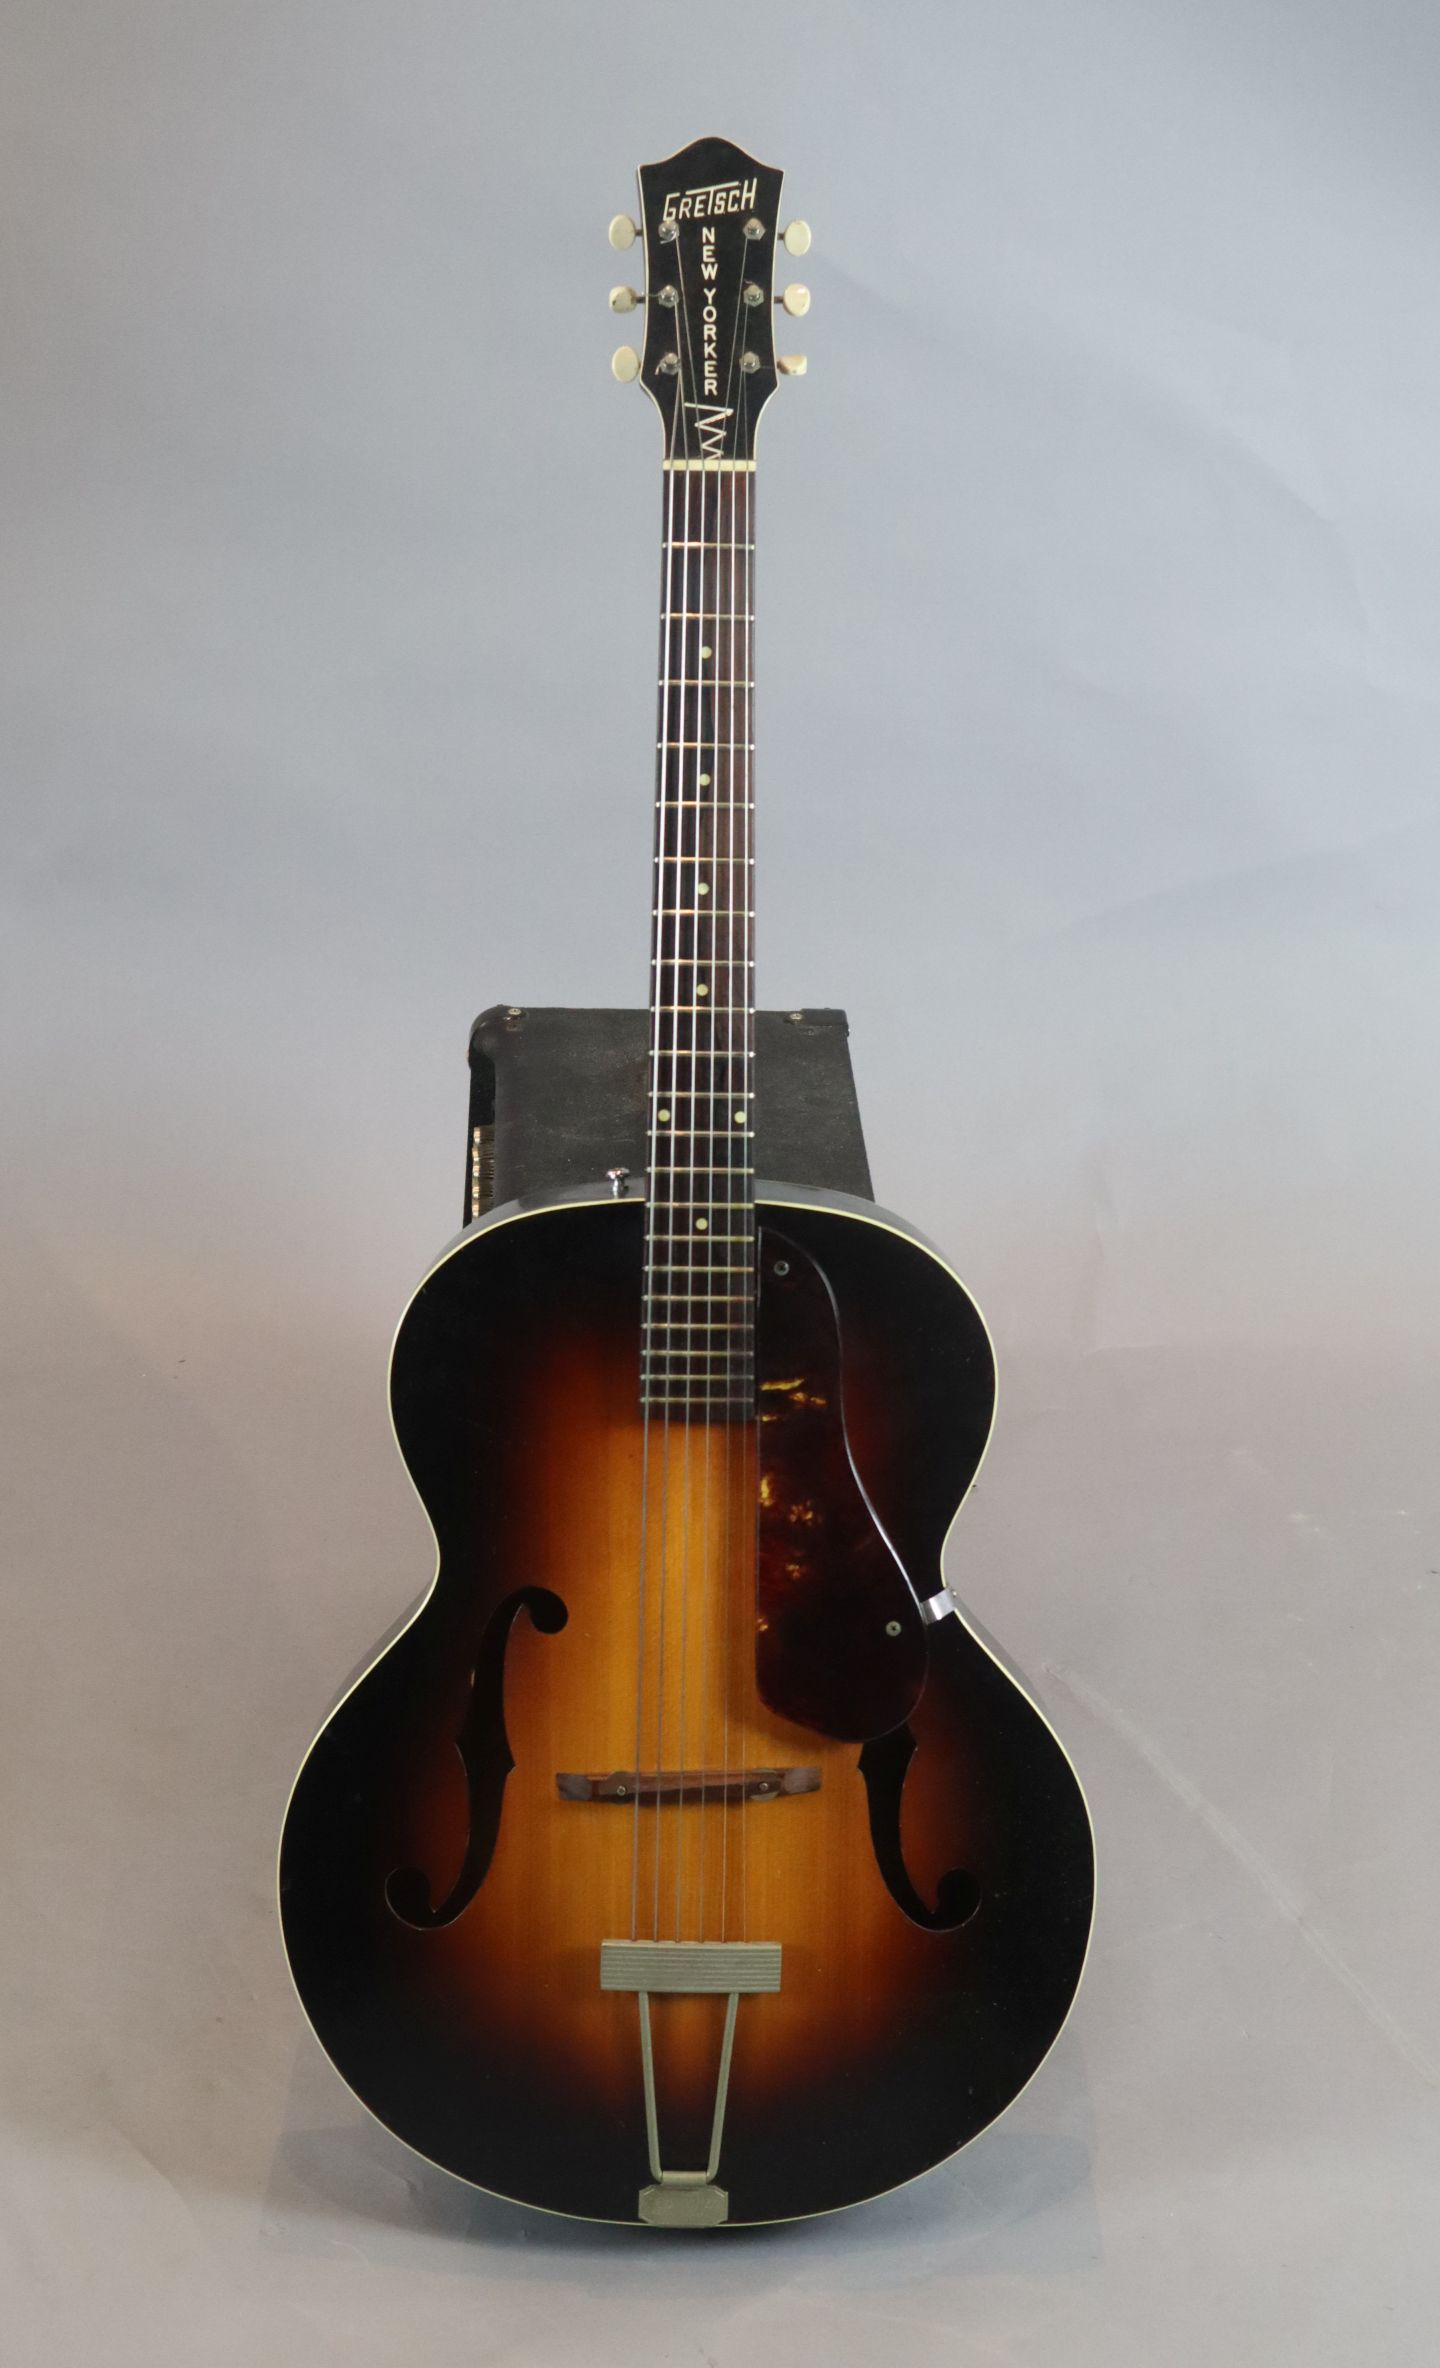 Lot 122 - A Gretsch New Yorker 1954 semi-hollow body guitar, with hard case